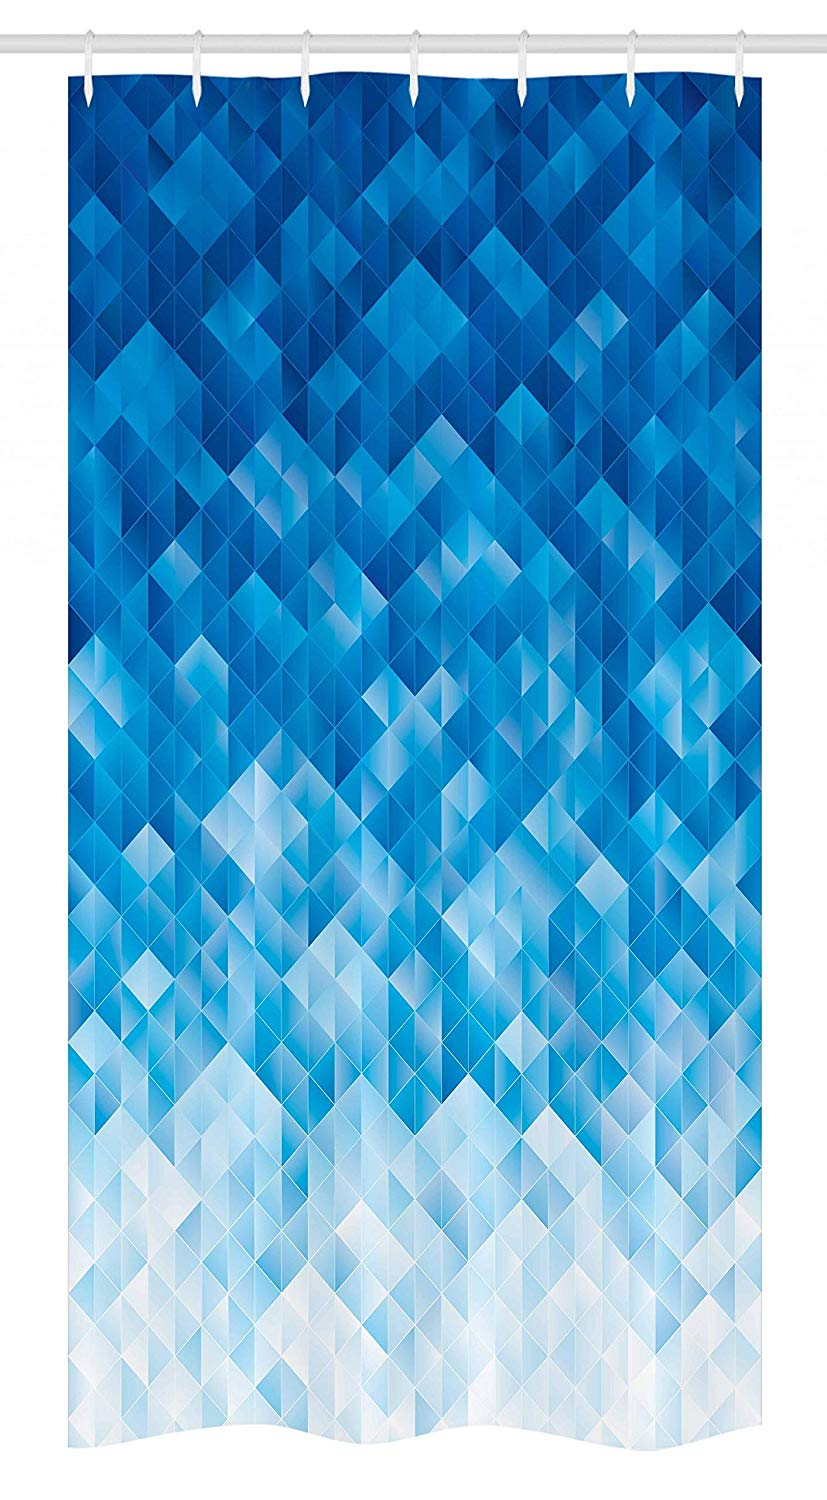 Ambesonne Geometric Stall Shower Curtain, Geometric Gradient Digital Texture with Mosaic Triangle Pixel Graphic Print Art, Fabric Bathroom Decor Set with Hooks, 36 W x 72 L inches, Light Blue